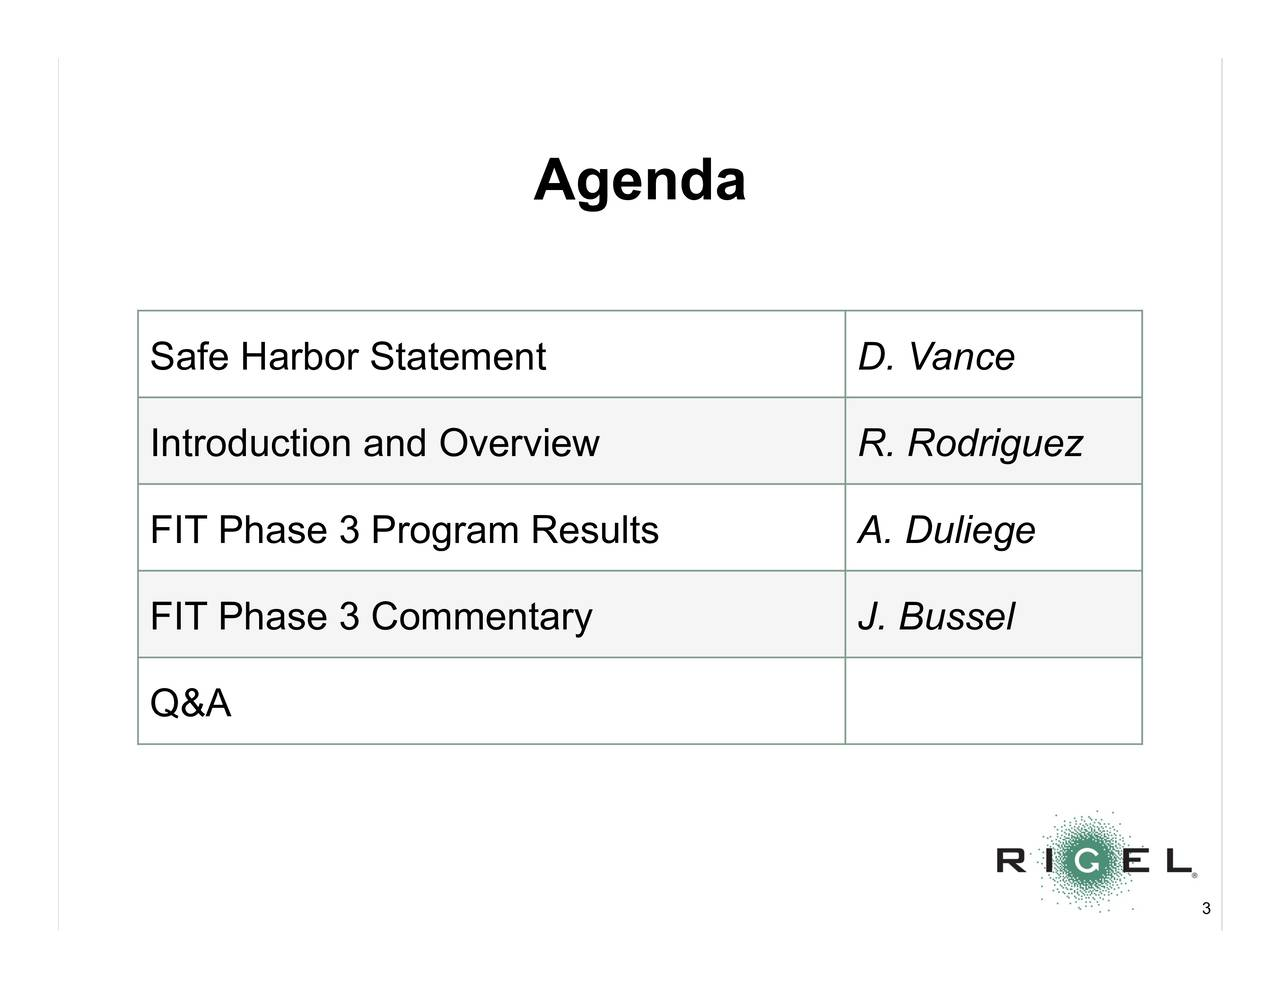 Safe Harbor Statement D. Vance Introduction and Overview R. Rodriguez FIT Phase 3 Program Results A.Duliege FIT Phase 3 Commentary J. Bussel Q&A 3